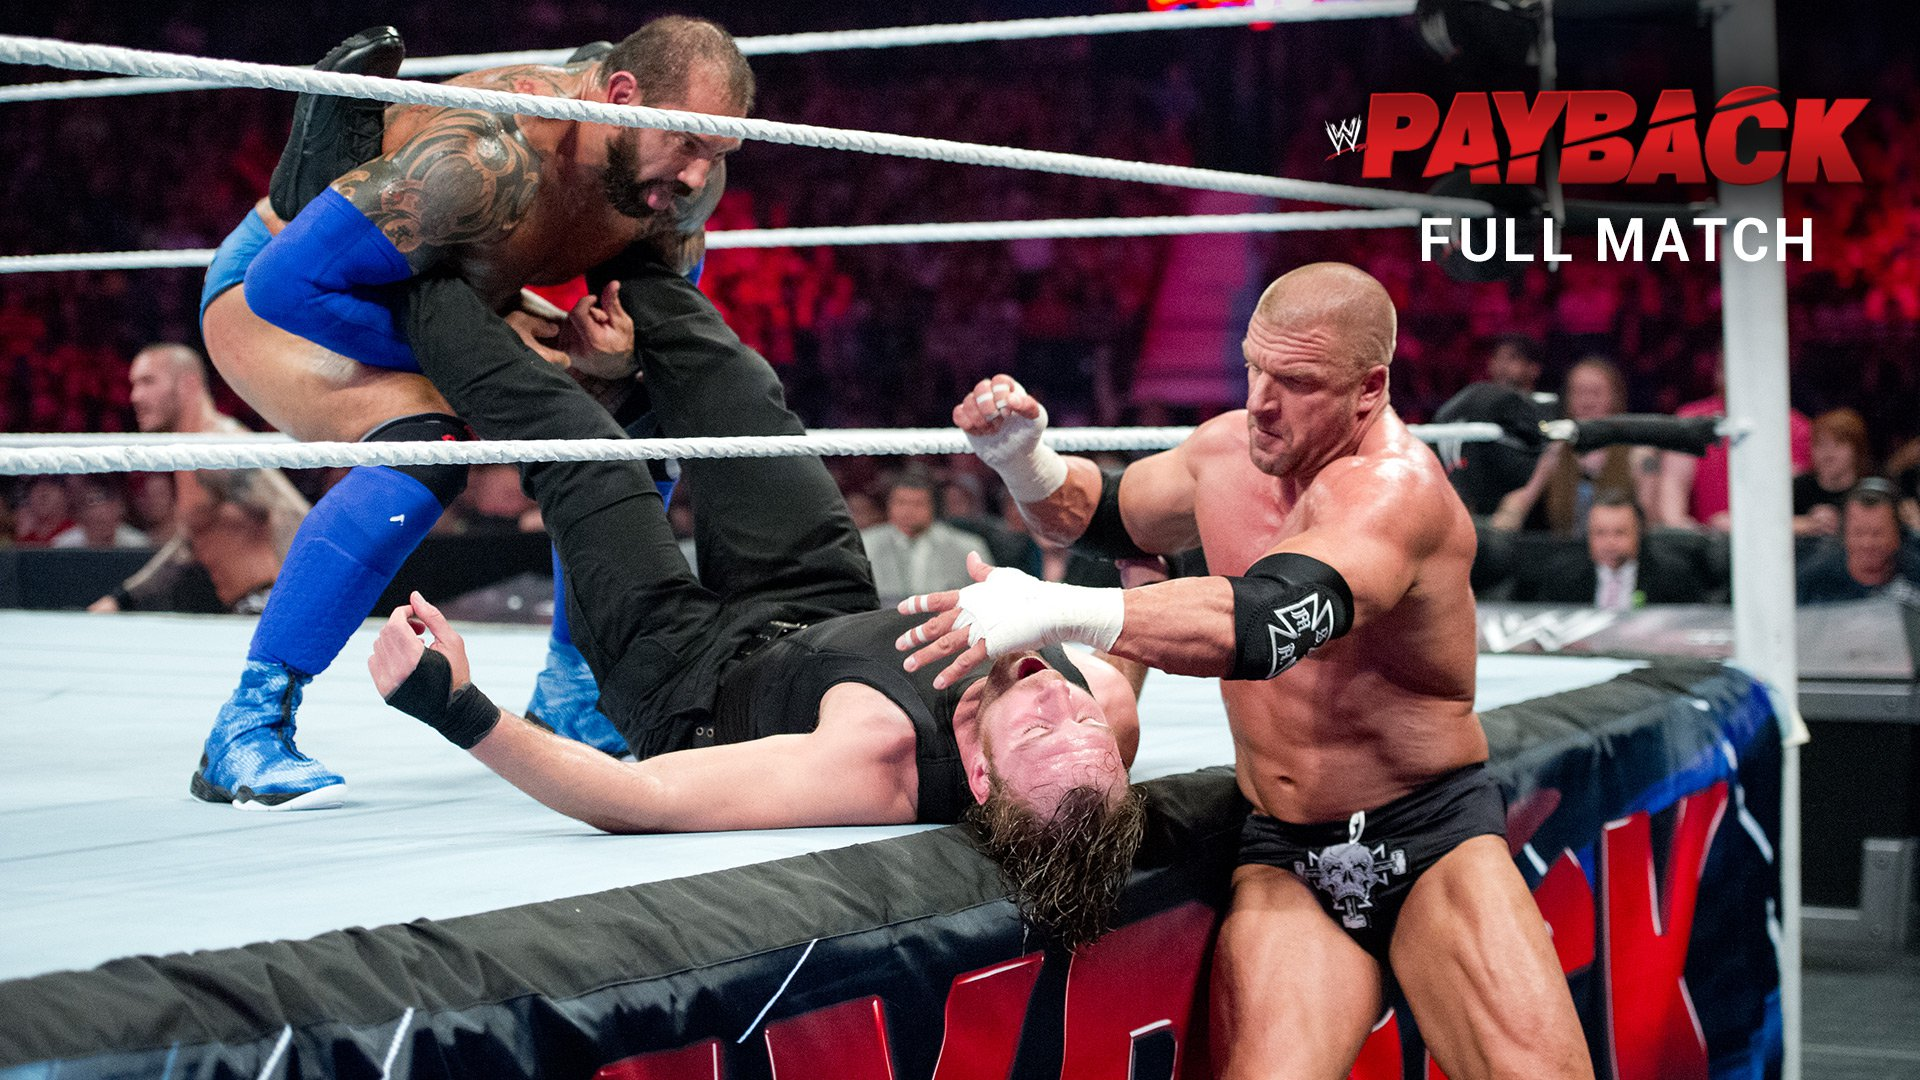 The Shield vs. Evolution - No Holds Barred Elimination Match: WWE Payback 2014 (pełne starcie)